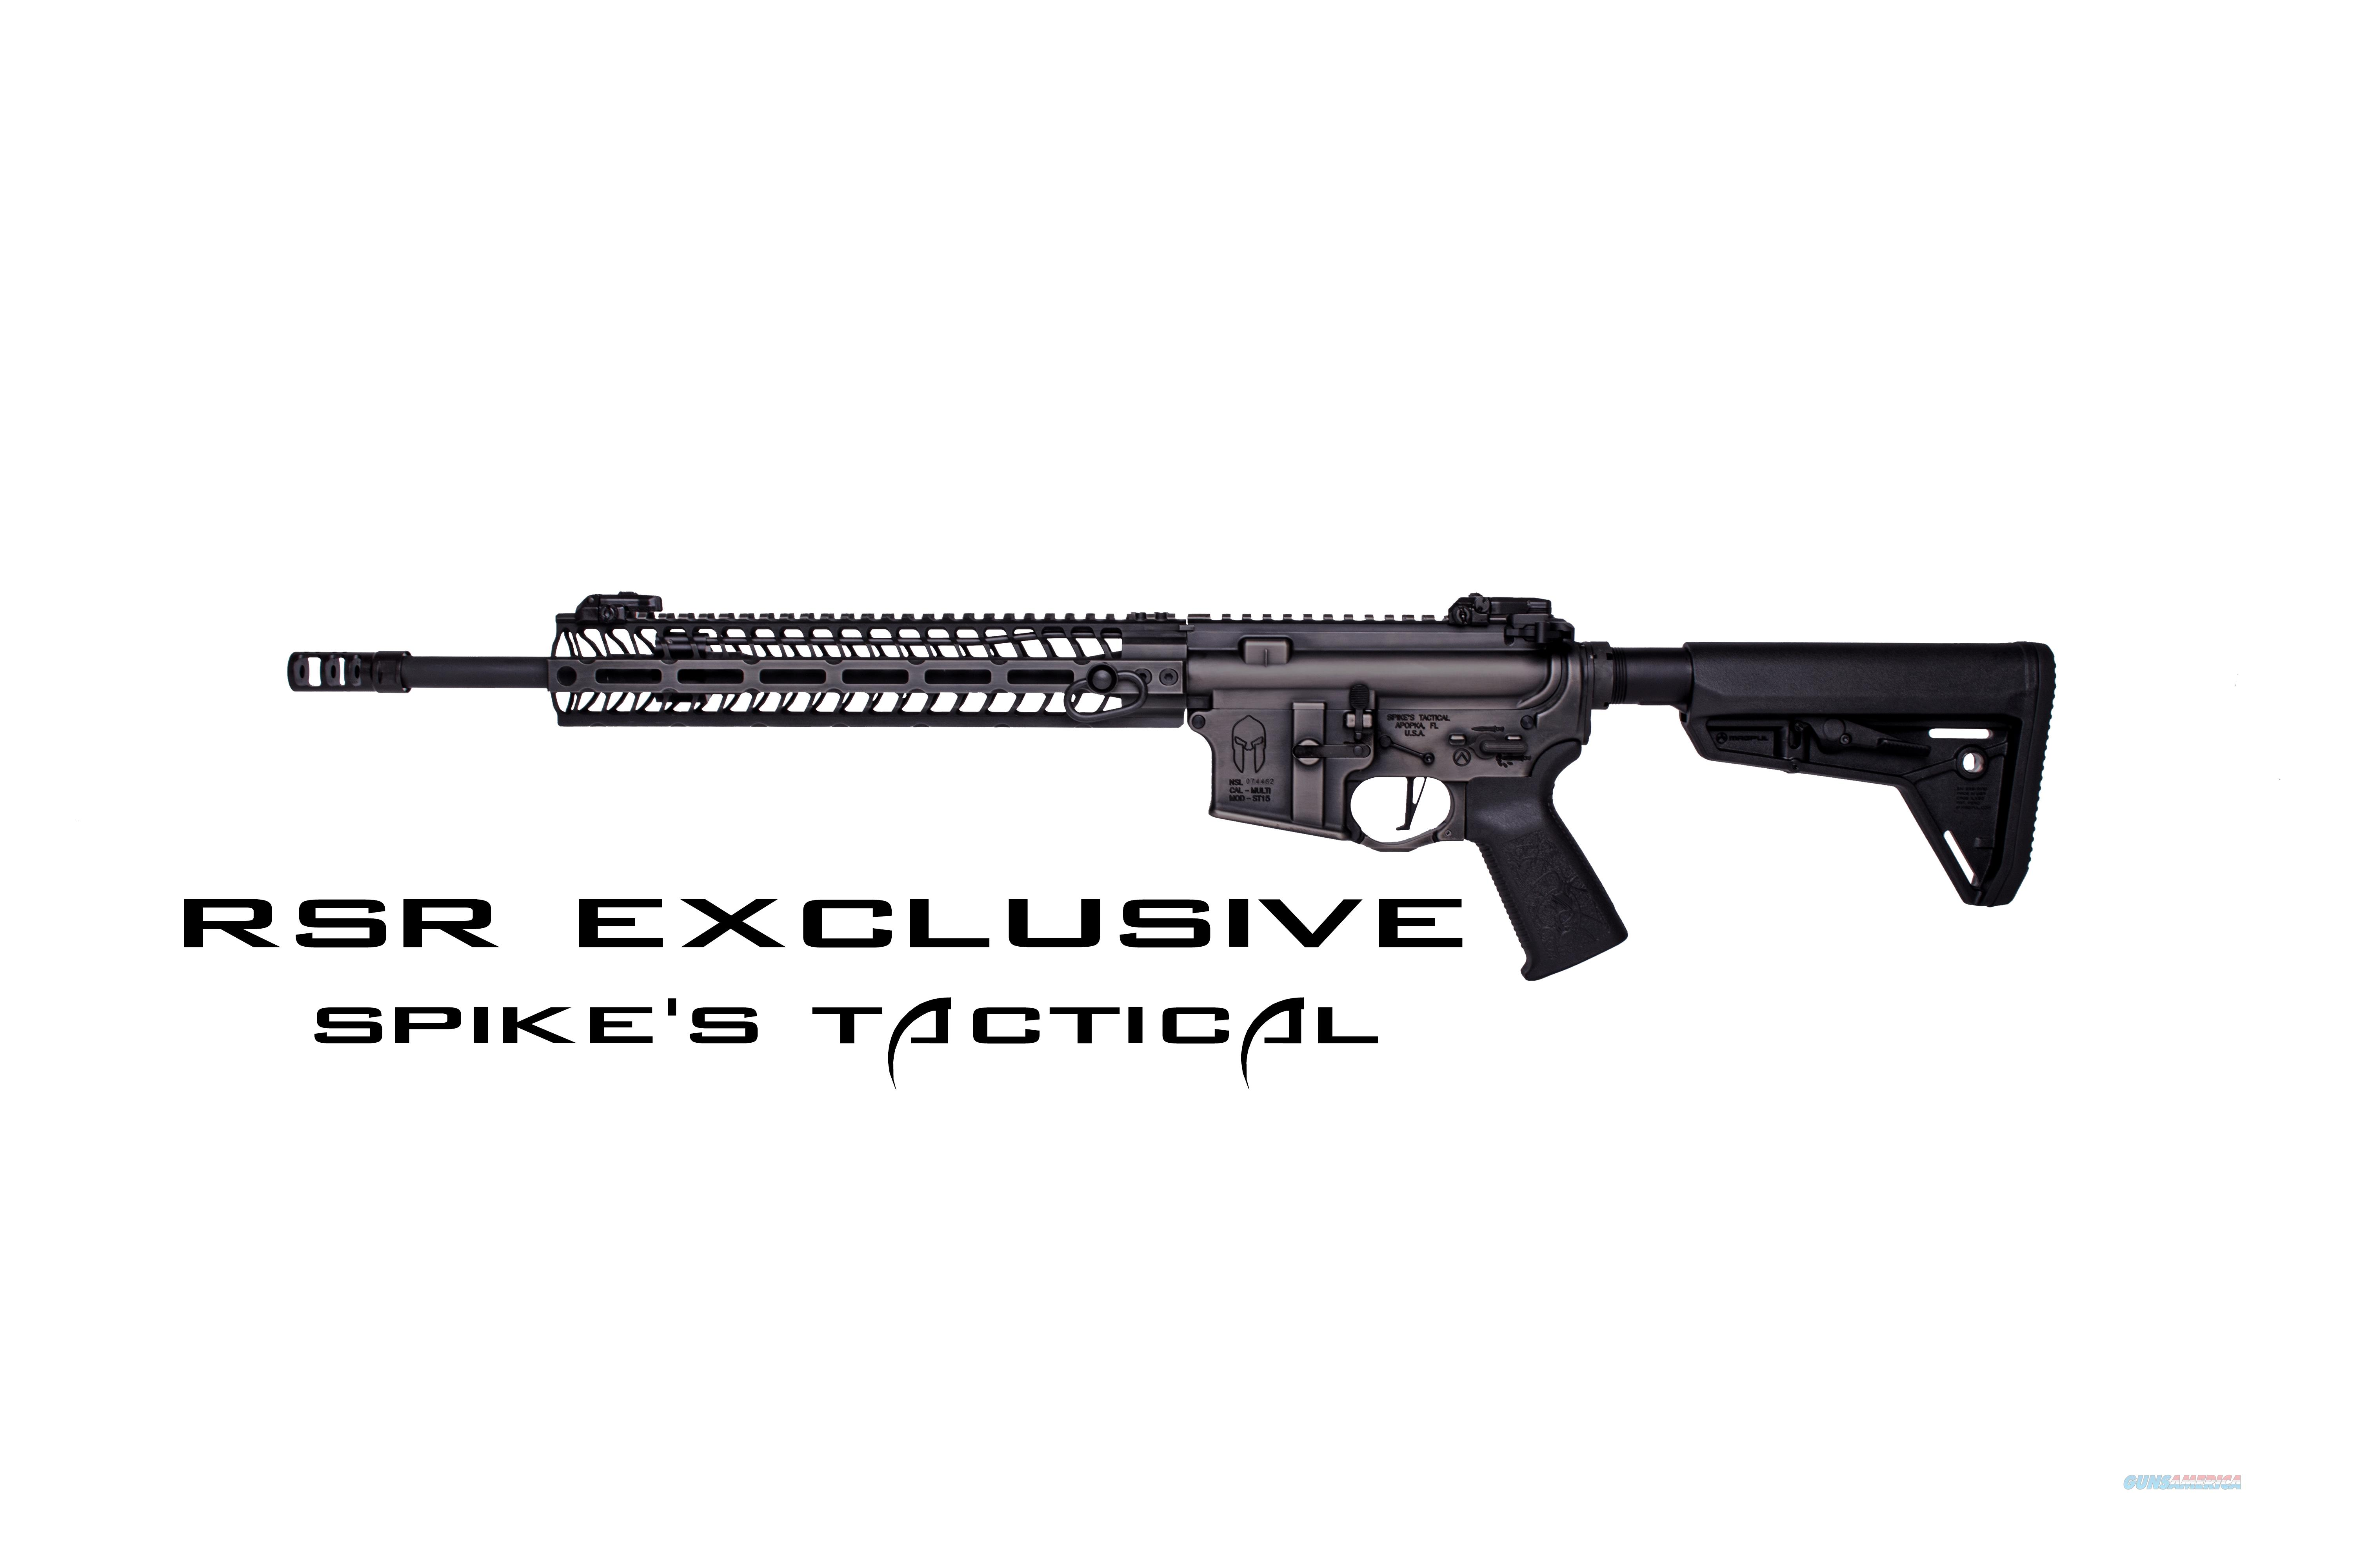 SPIKES TACTICAL SPARTAN  FREE SHIPPING  Guns > Rifles > Spikes Tactical Rifles